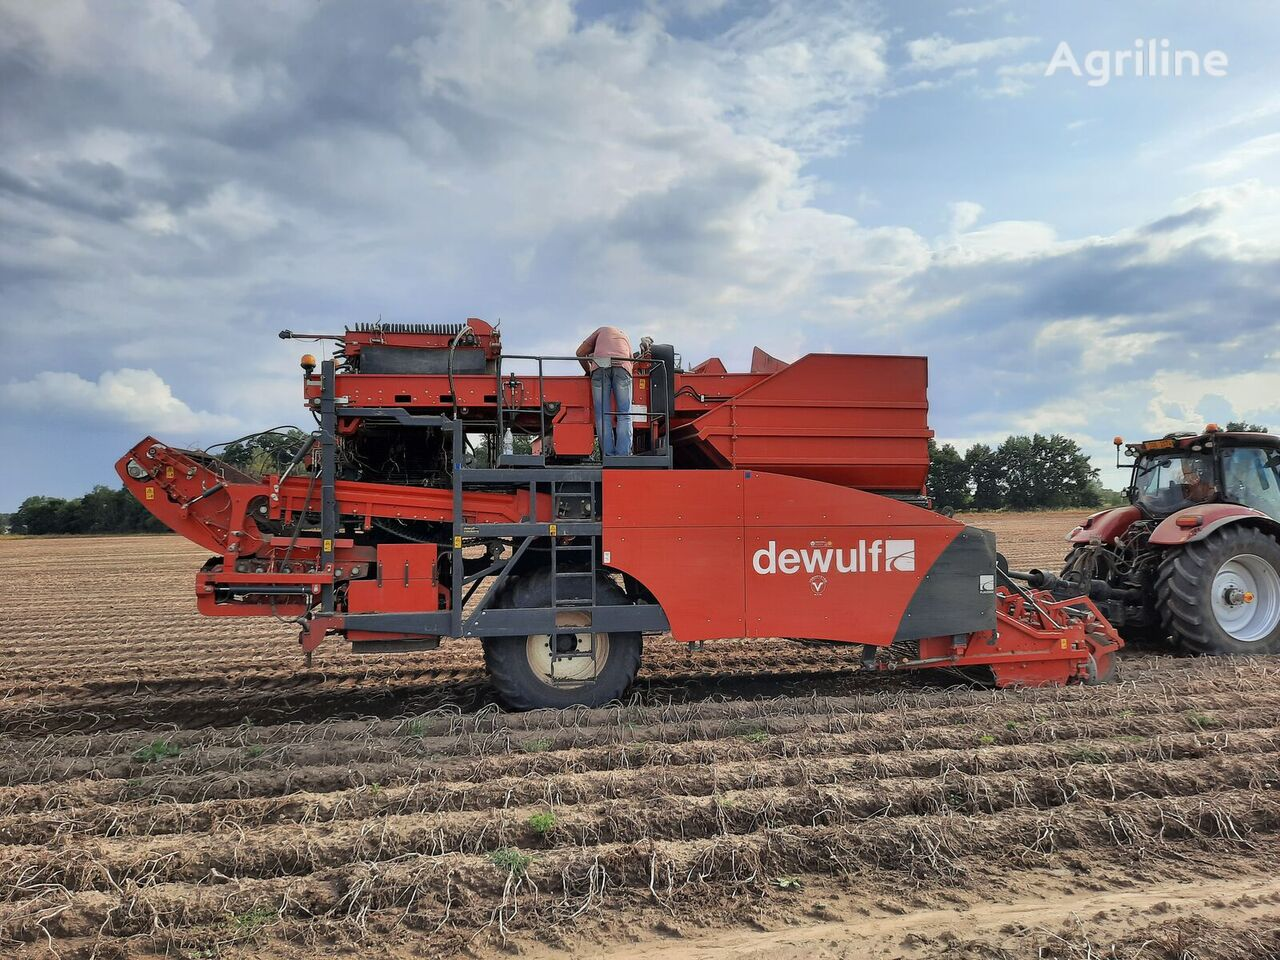 DEWULF R2060 potato harvester